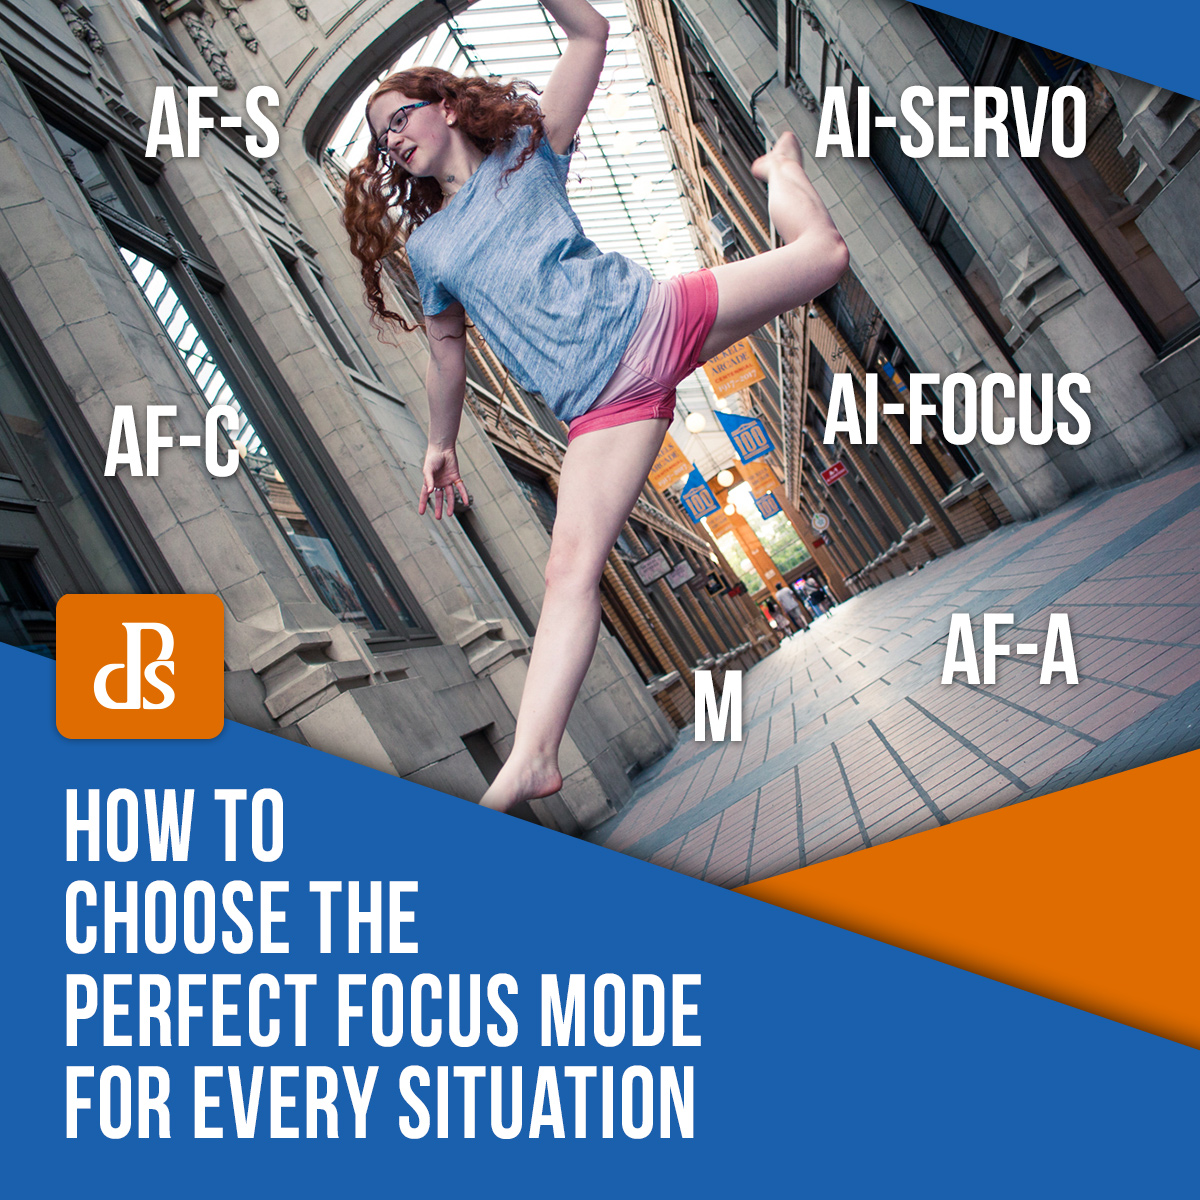 dps-how-to-choose-the-perfect-focus-mode